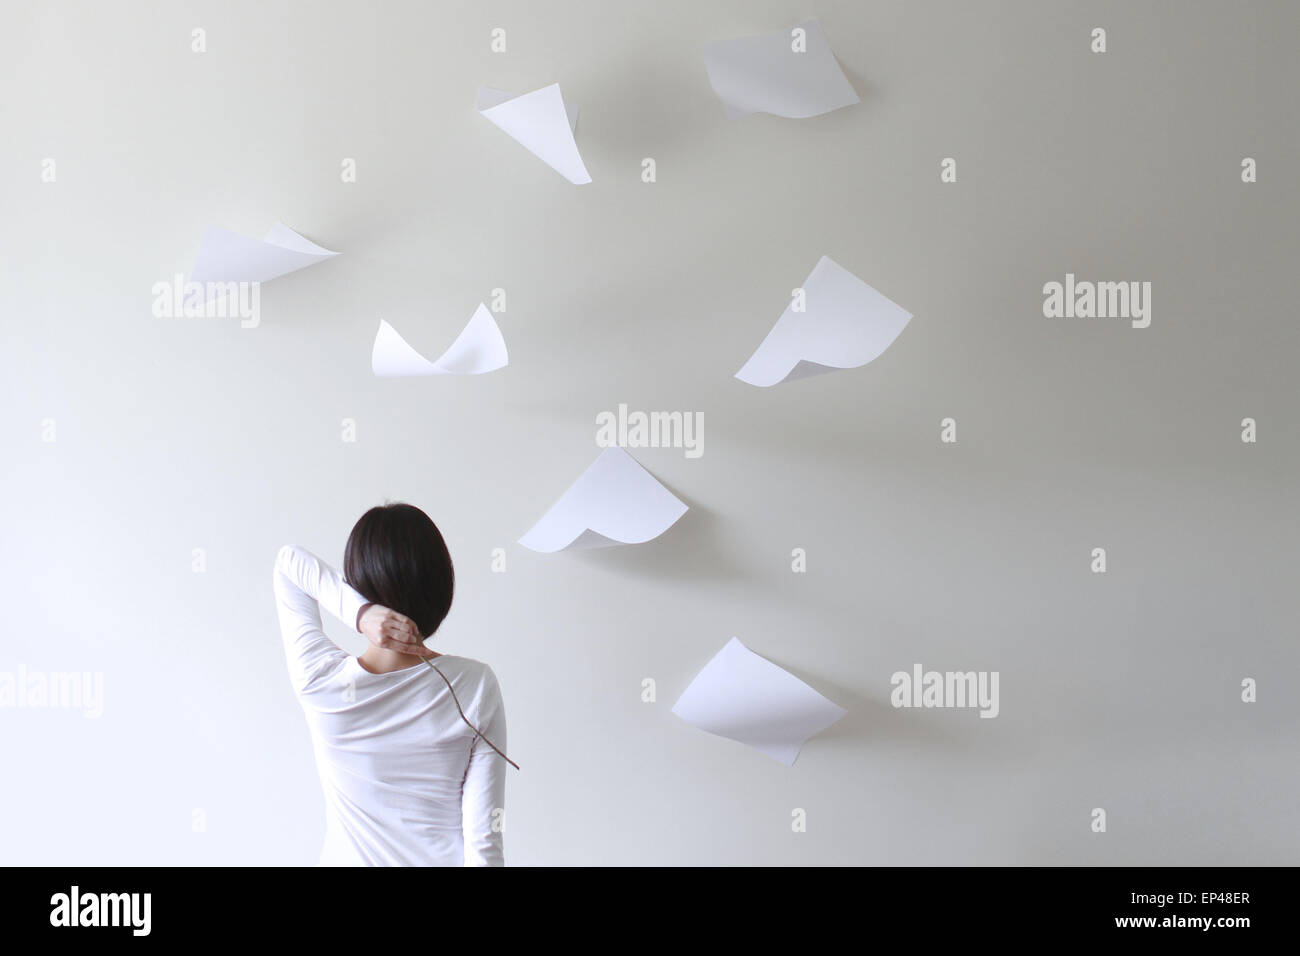 Rear view of a woman holding a stick behind her head with pieces of paper flying around - Stock Image